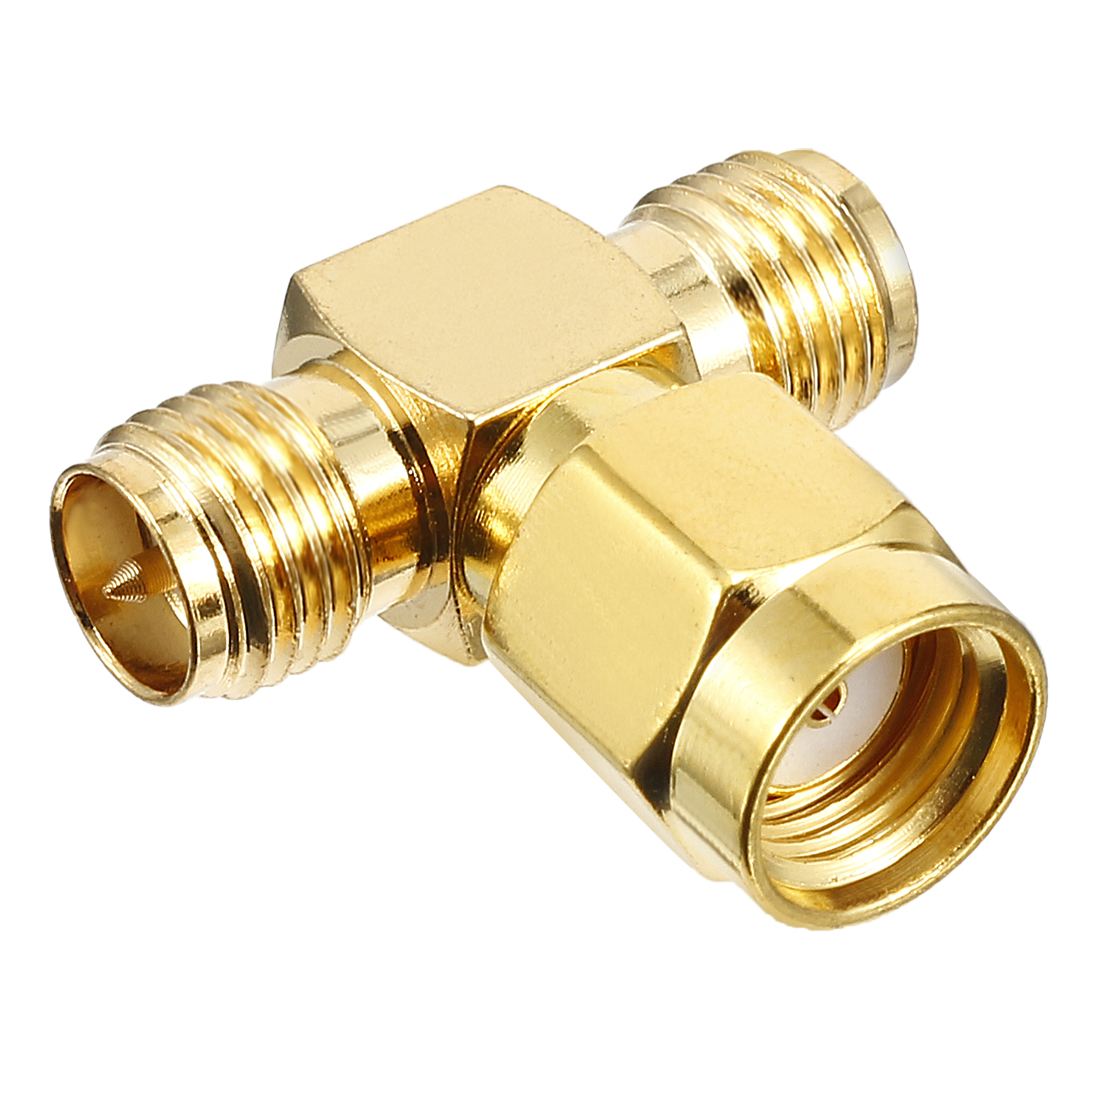 Gold Tone 3 Way RP-SMA Male to RP-SMA Female Jack RF Coaxial Connector Joiners